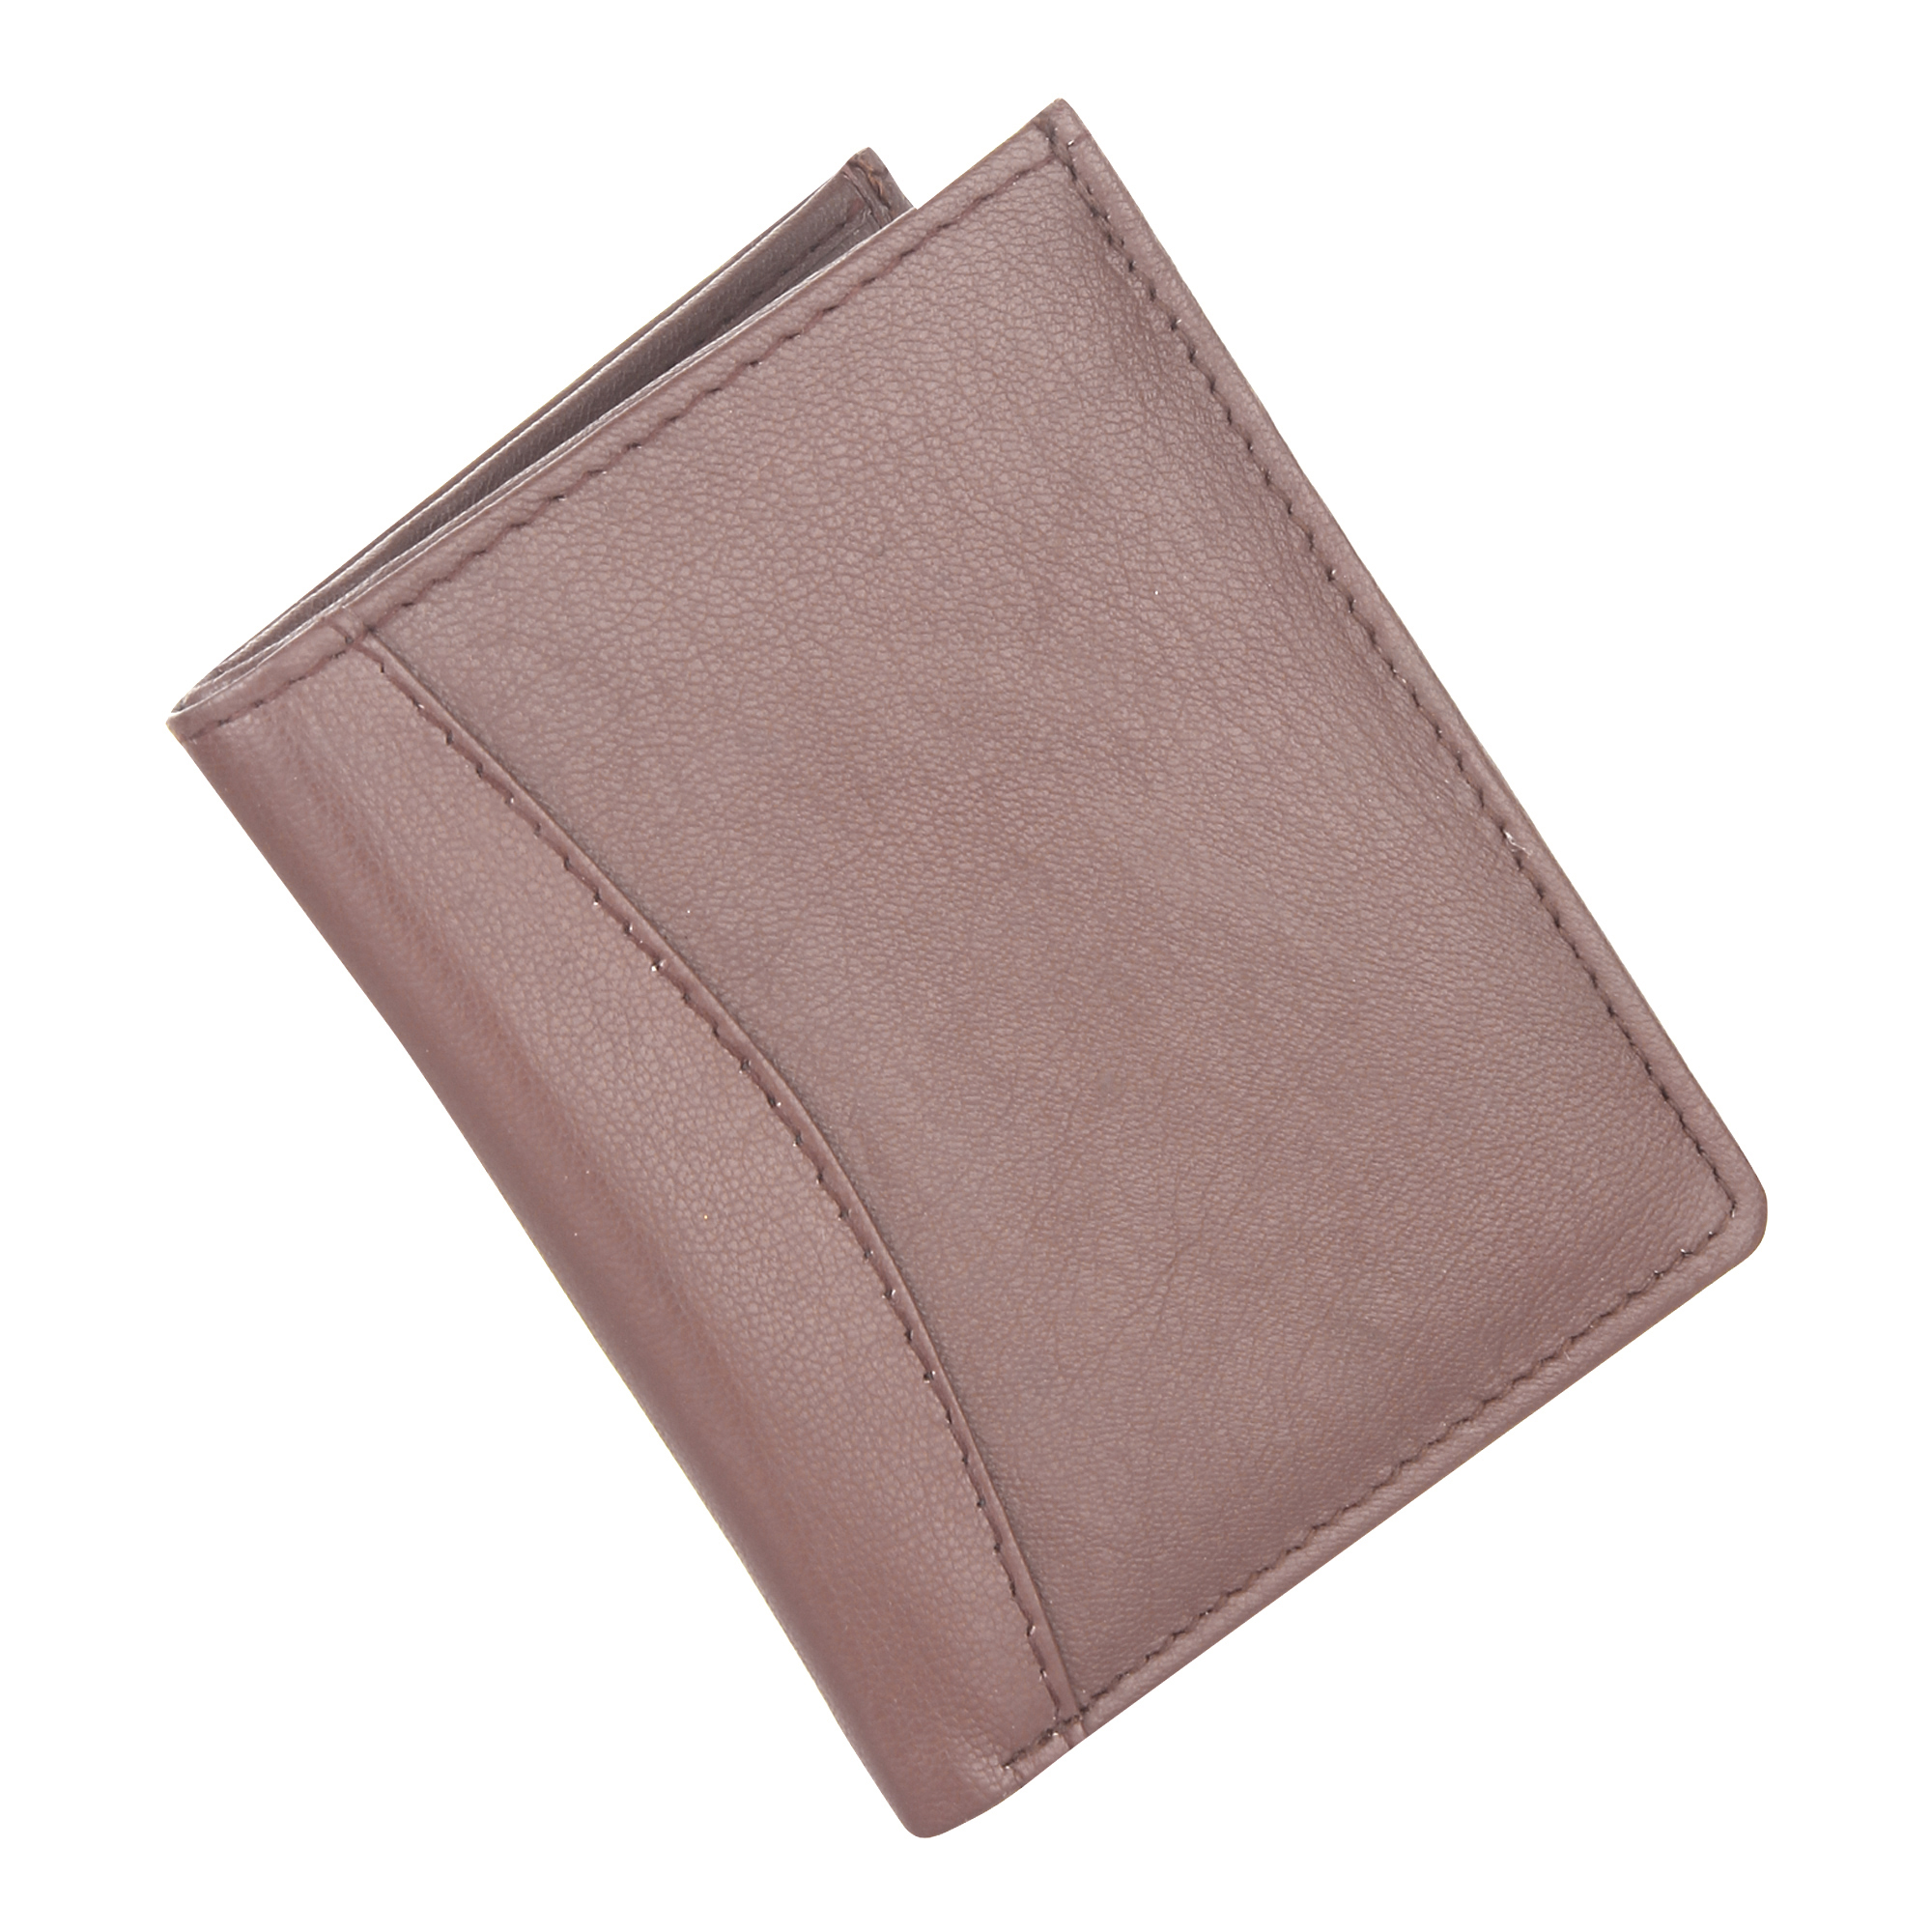 Leather Card Holder Wallet Manufacturers In Alabama, Card Holder Wallet Suppliers In Alabama, Card Holder Wallet Wholesalers In Alabama, Card Holder Wallet Traders In Alabama